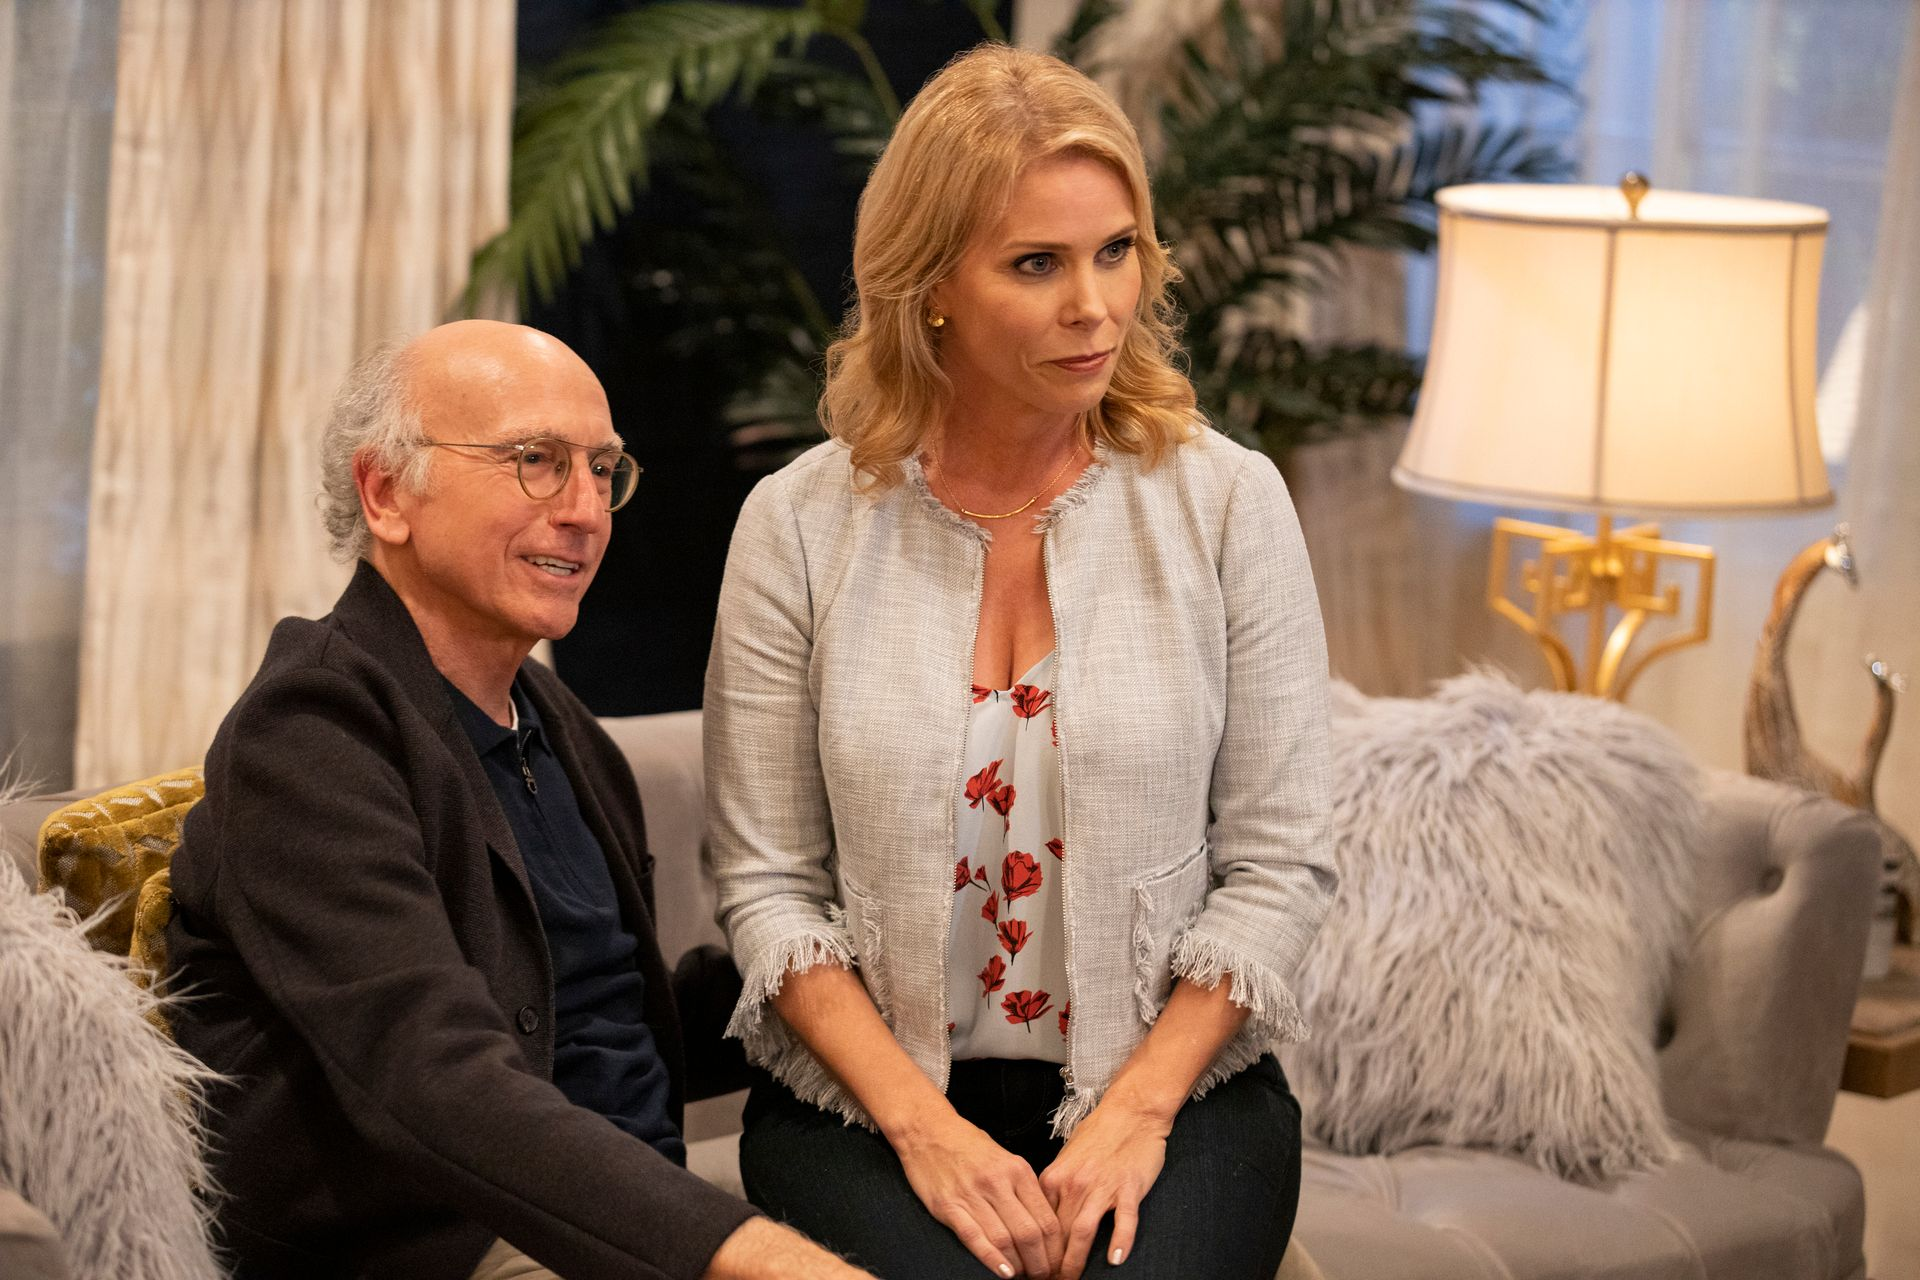 Curb Your Enthusiasm Season 10 Review: Funny but Relentless | Collider